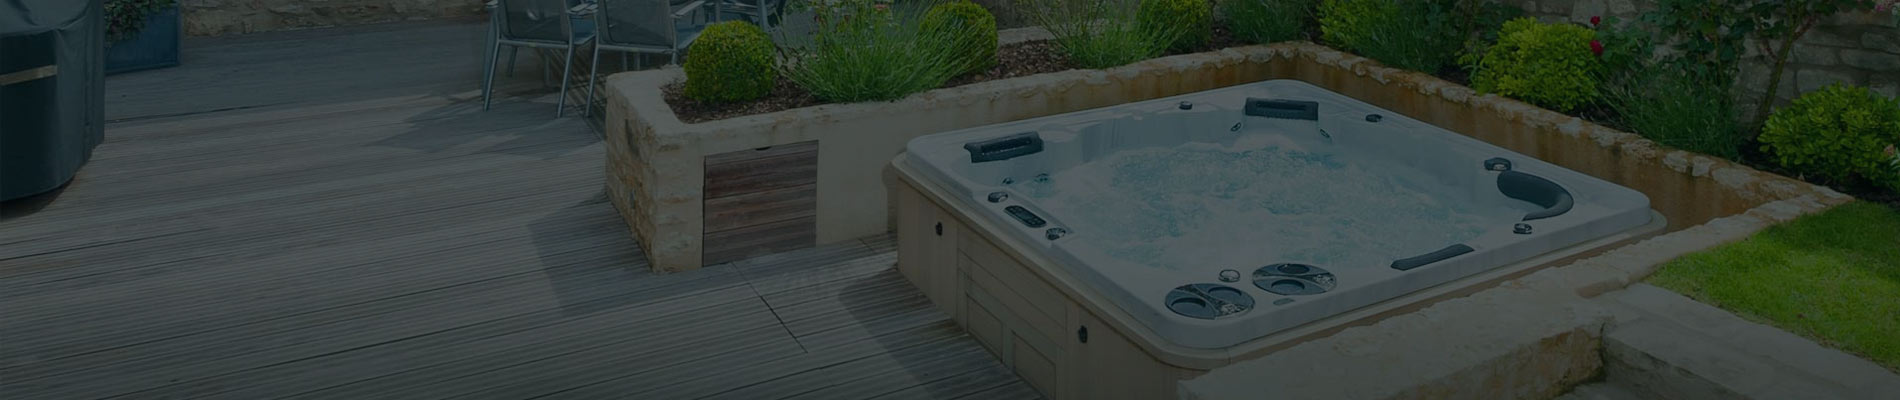 Hydropool Swim Spas for Year-Round Enjoyment - Goodall Pools